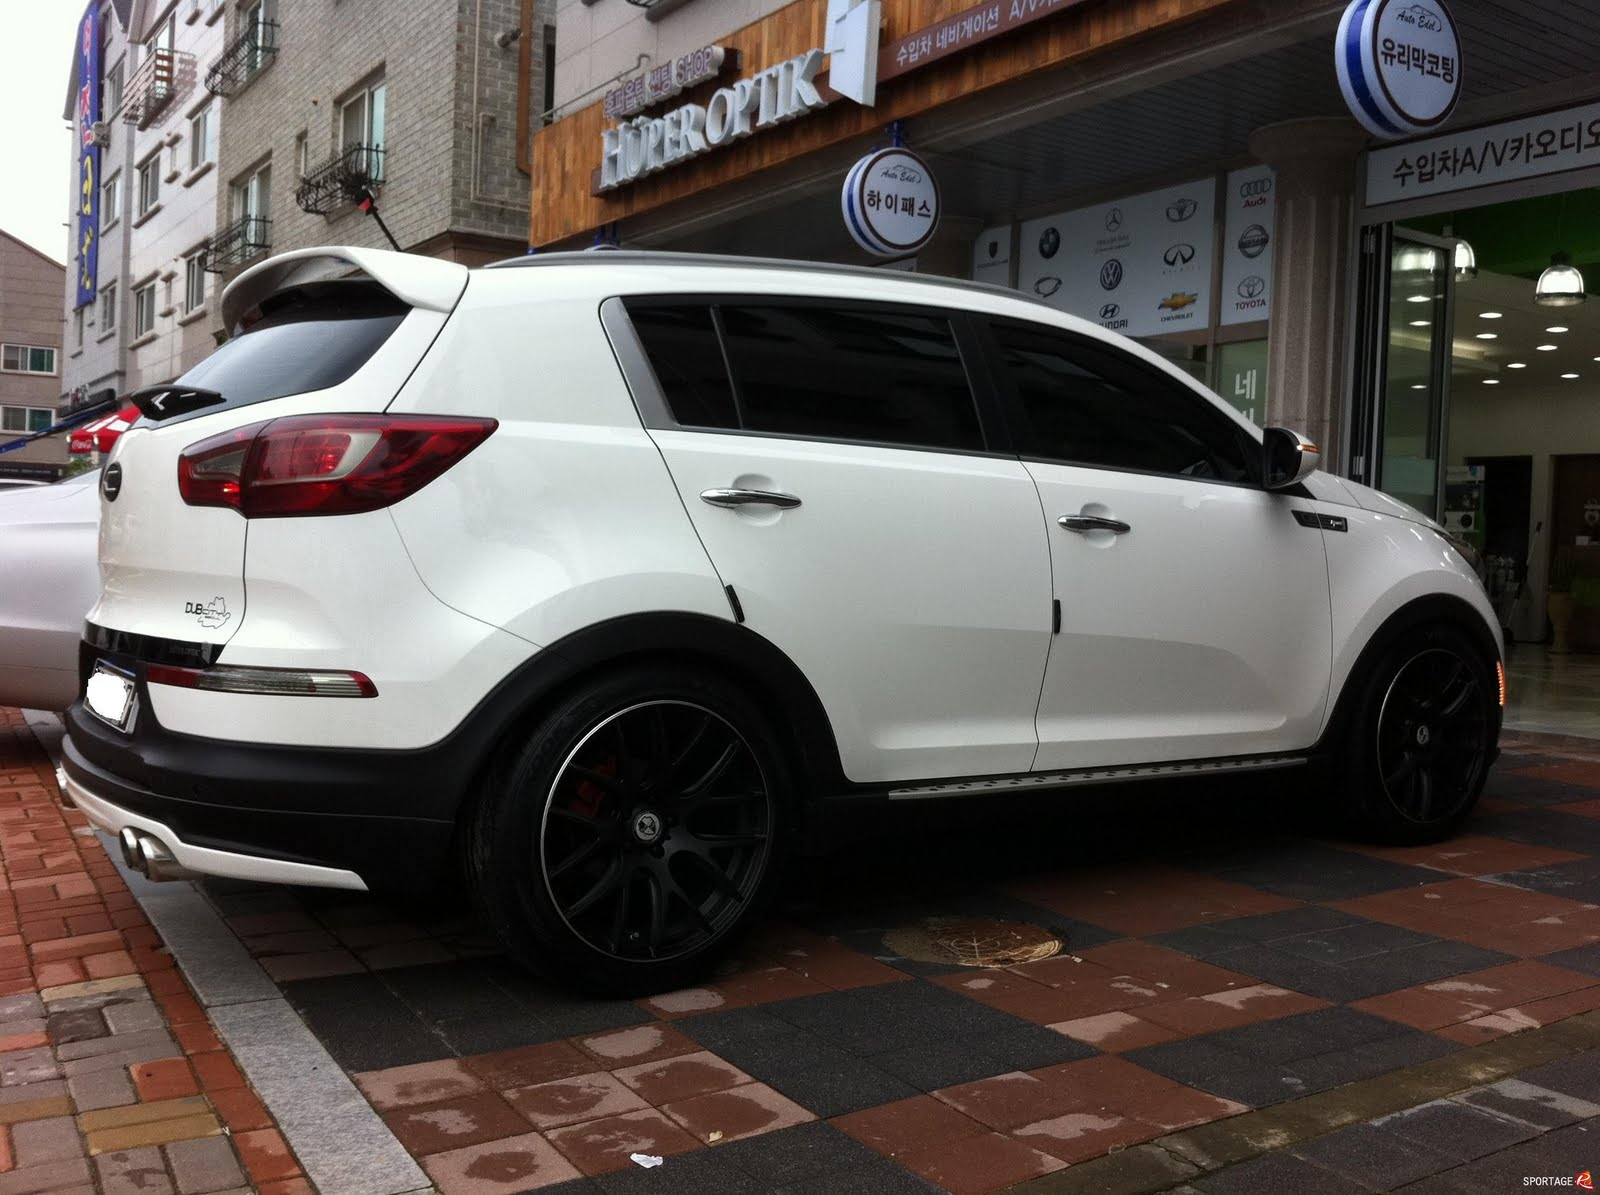 My Perfect Kia Sportage 3dtuning Probably The Best Car